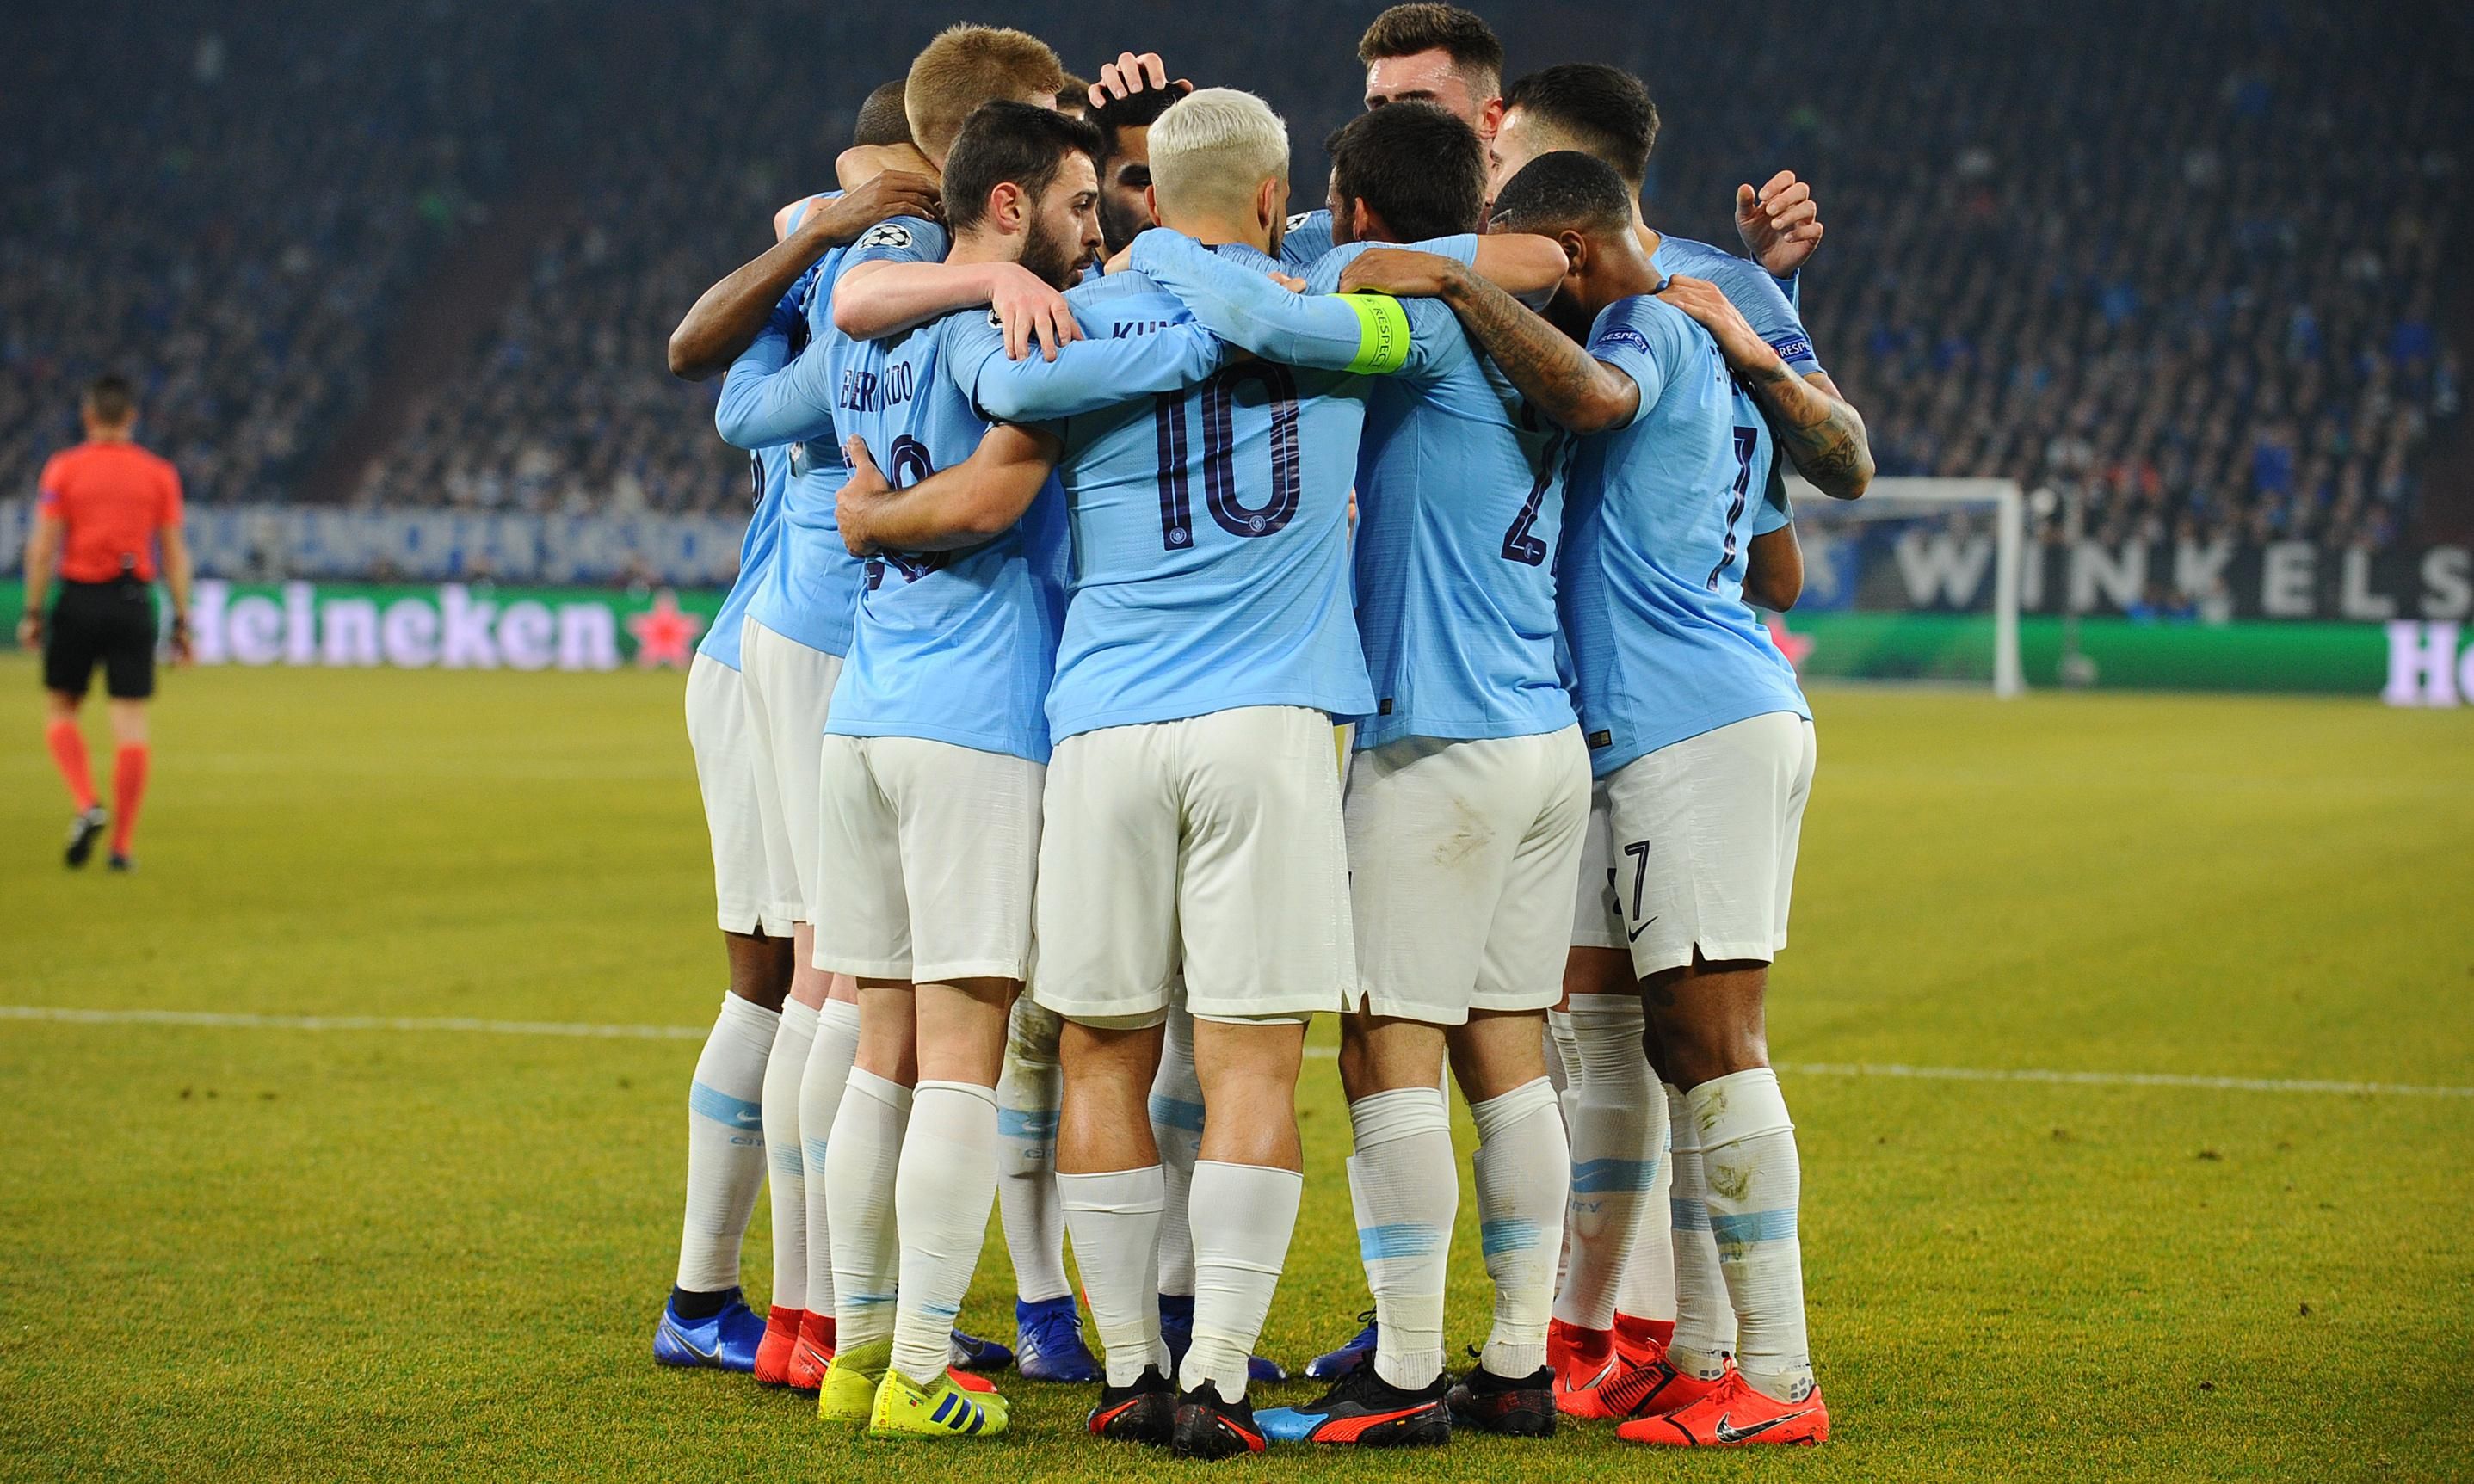 Retaining the Carabao Cup would be historic for City, says Bernardo Silva